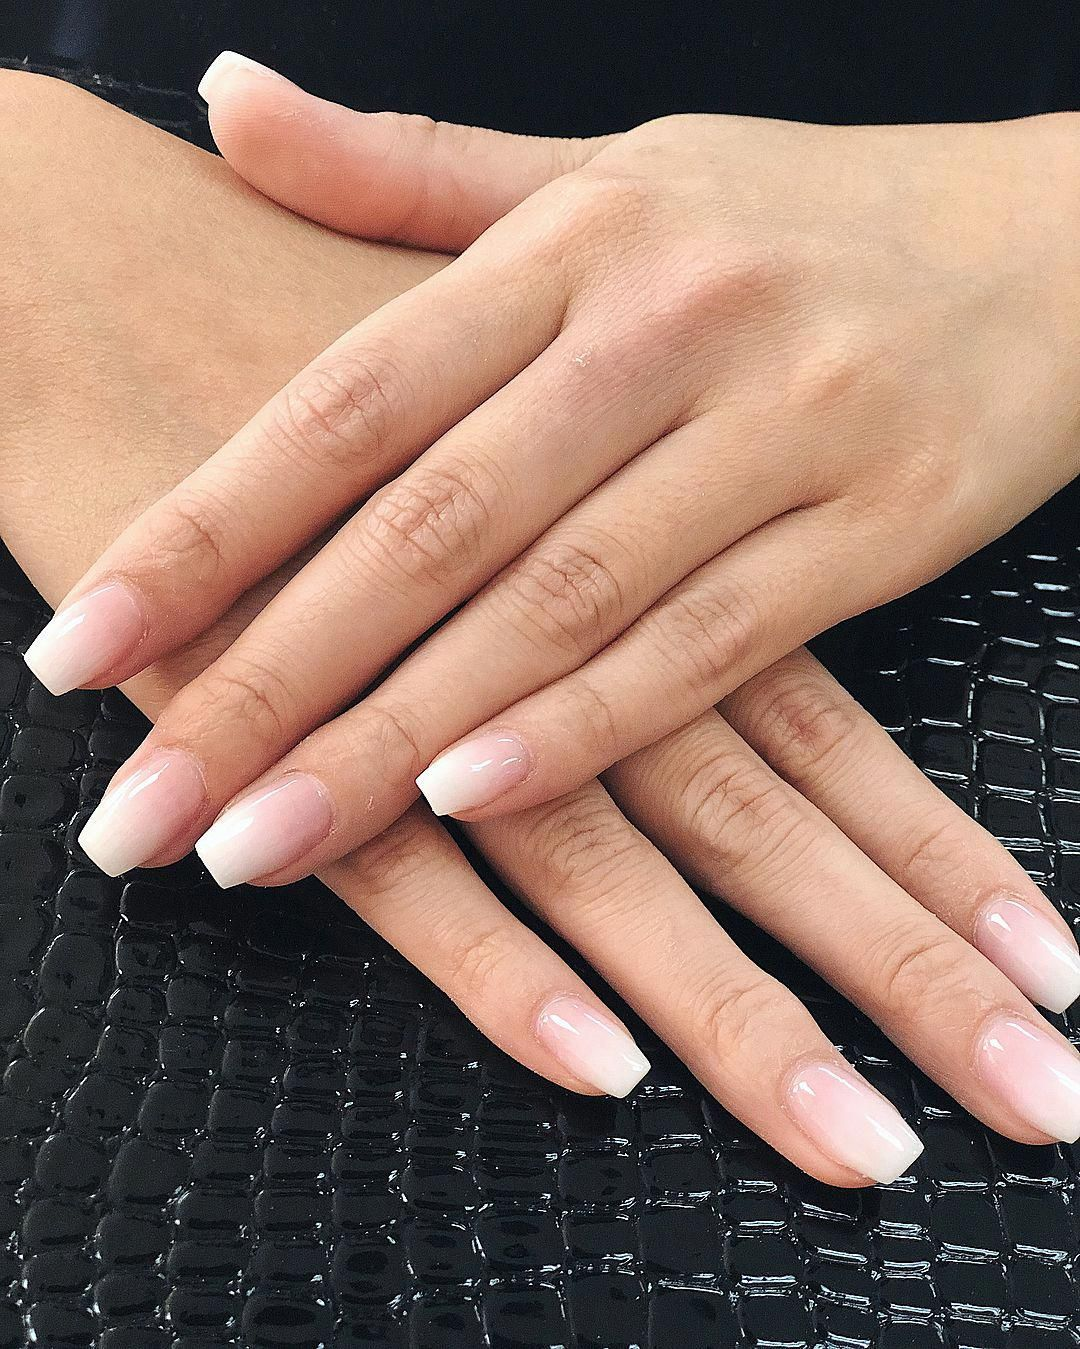 Ombre Pink And White : ombre, white, Coffin, Shaped, White, Ombré, #nails, #nailart, #beautiful, #luxury, #trendy, #naildesigns, Nails,, Ombre, French, Nails